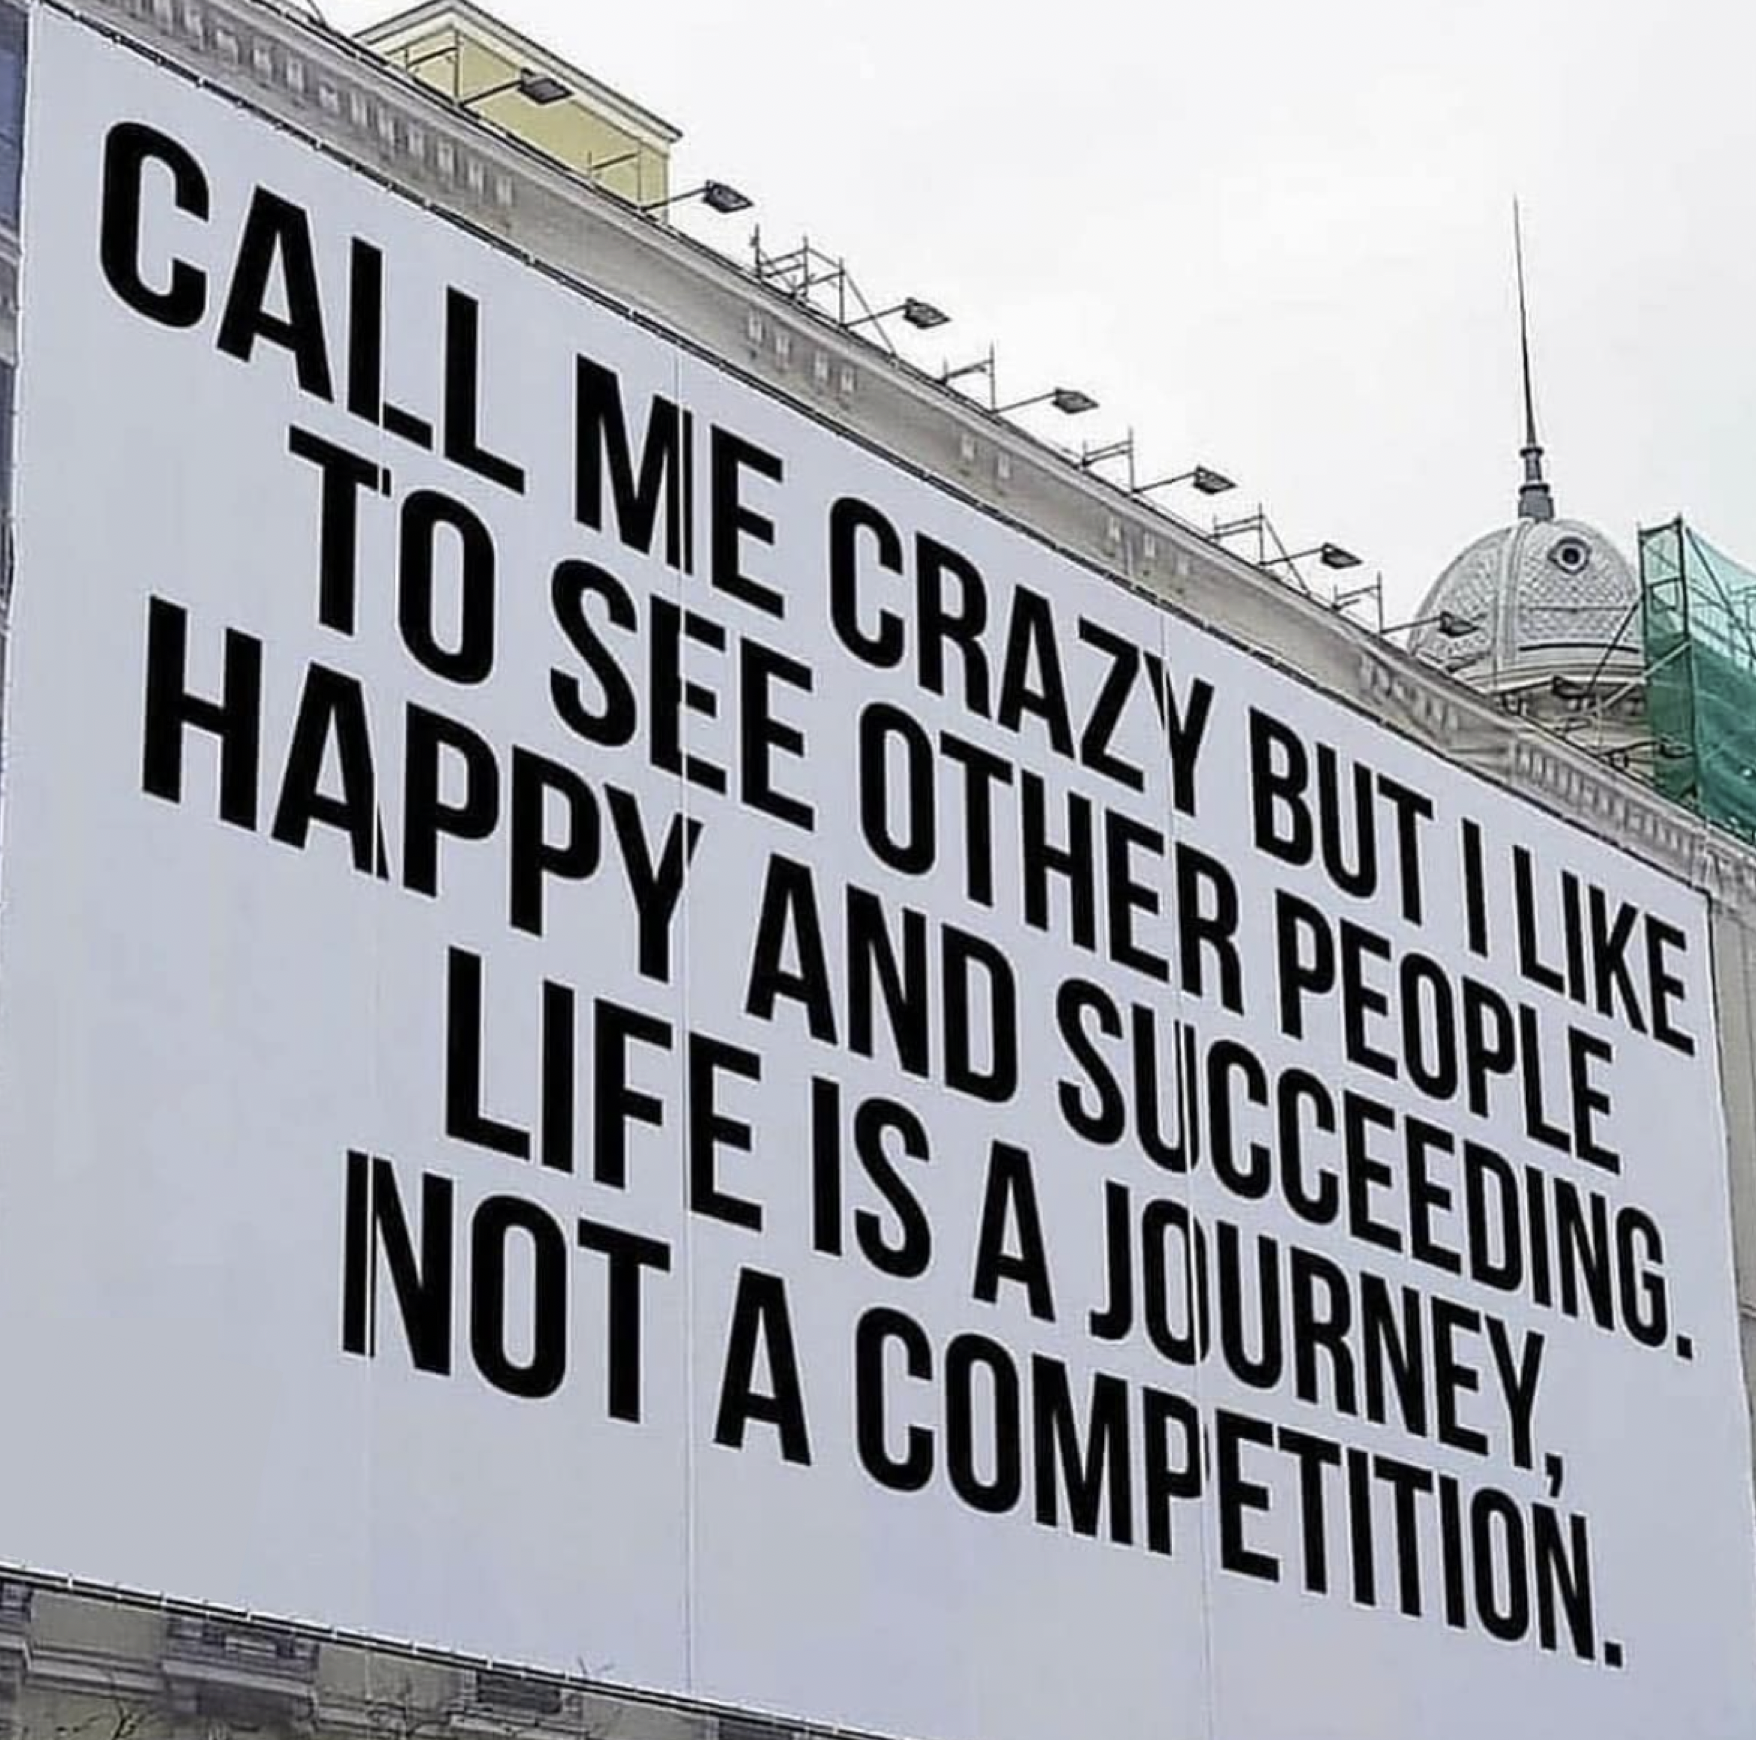 [Image] Be happy when other people are succeeding. Life is a journey, not a competition.